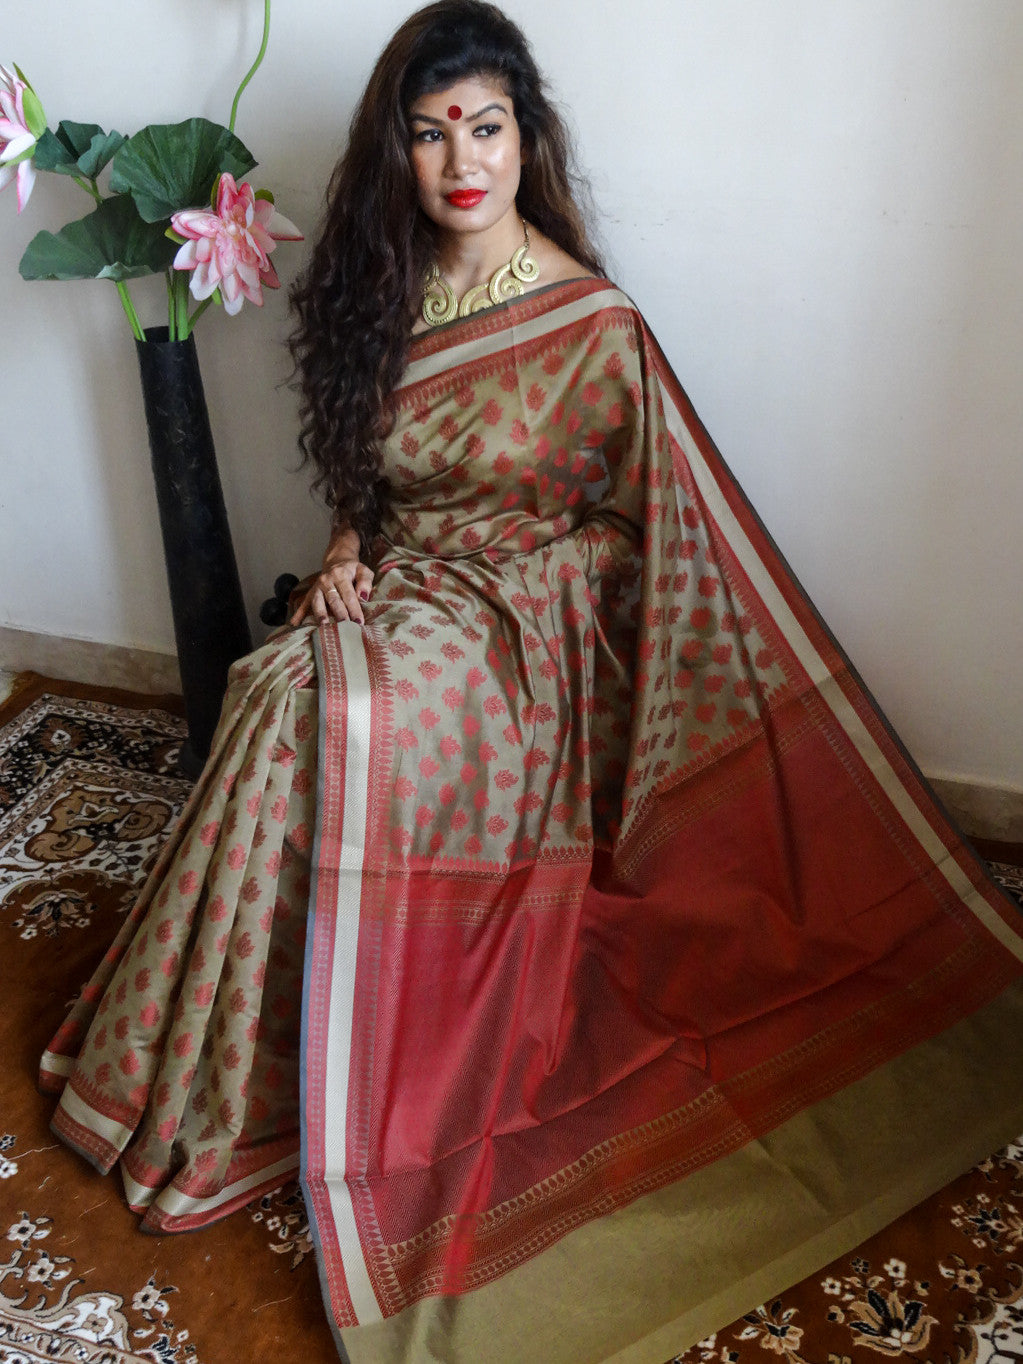 Banarasee/Banarasi Cotton Silk Red Booti Sari-Light Brown